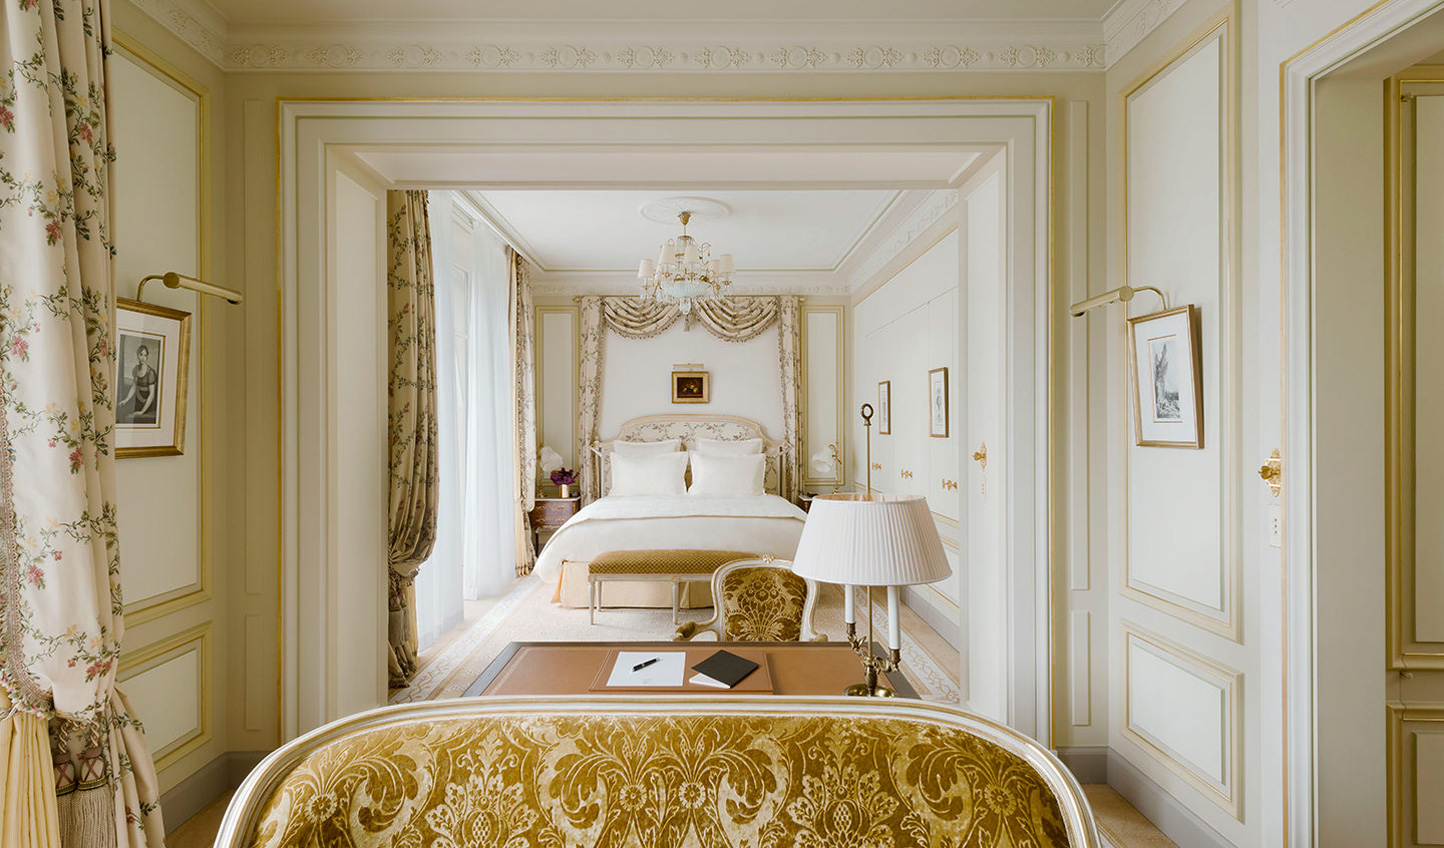 Subtle but stunning Neoclassical decor